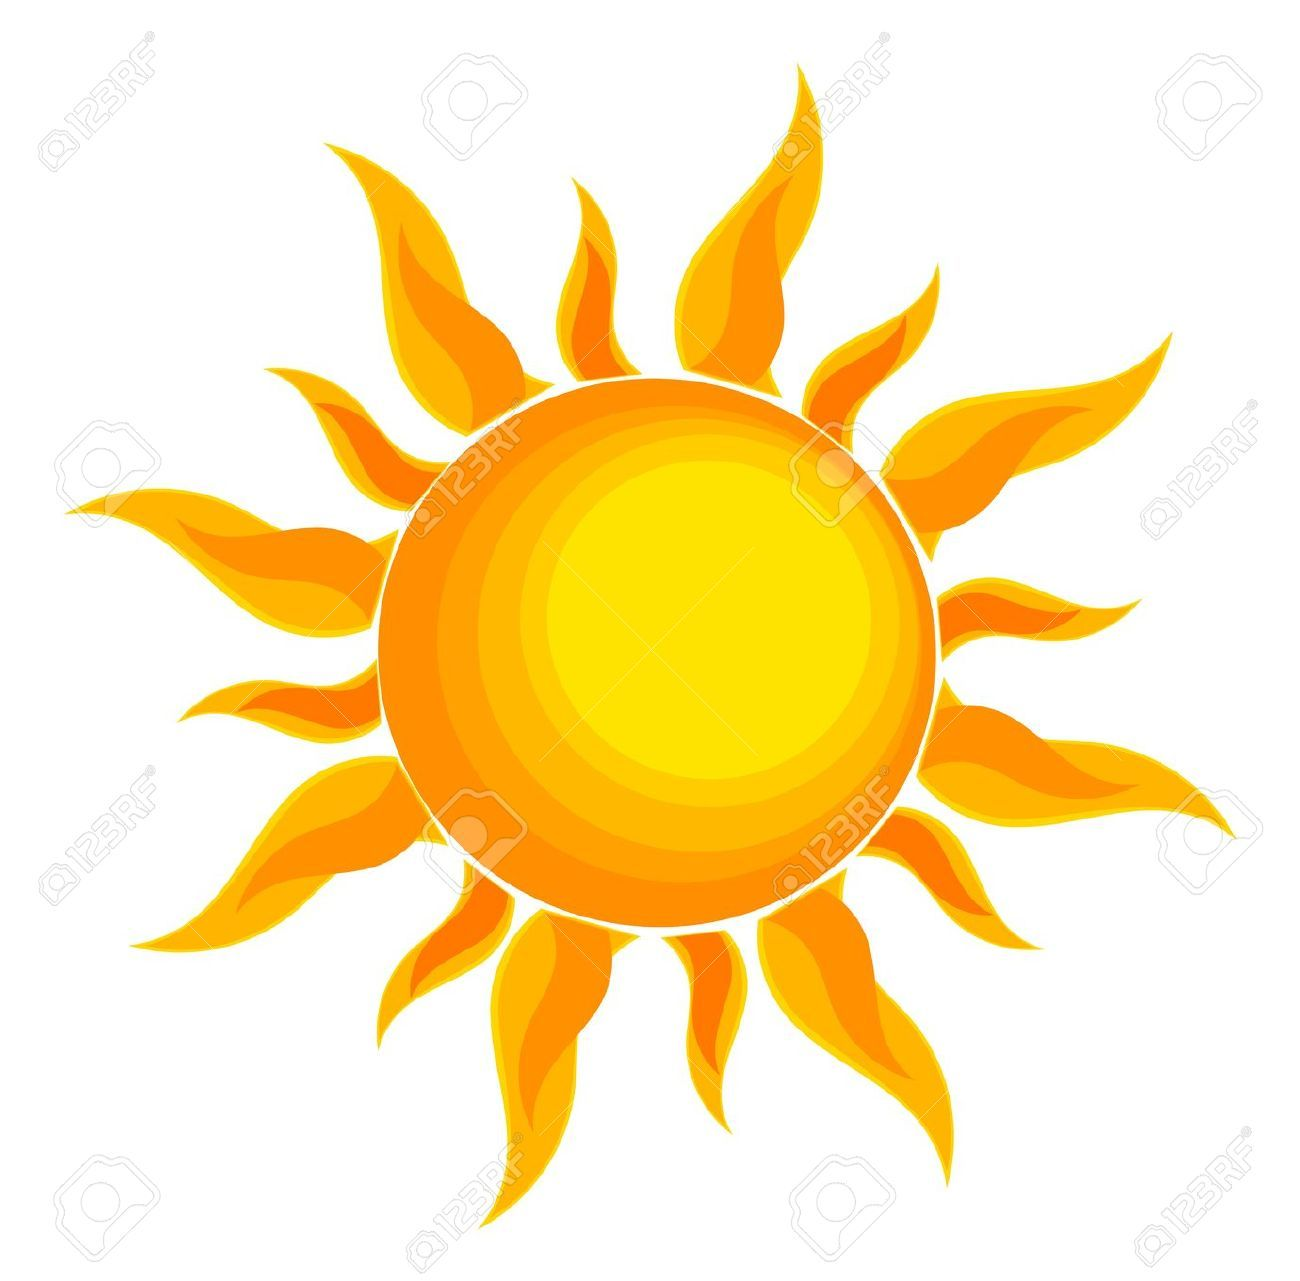 sun over white royalty free cliparts vectors and stock stuff rh pinterest com Sunshine Vector Free Free Vector Silhouettes